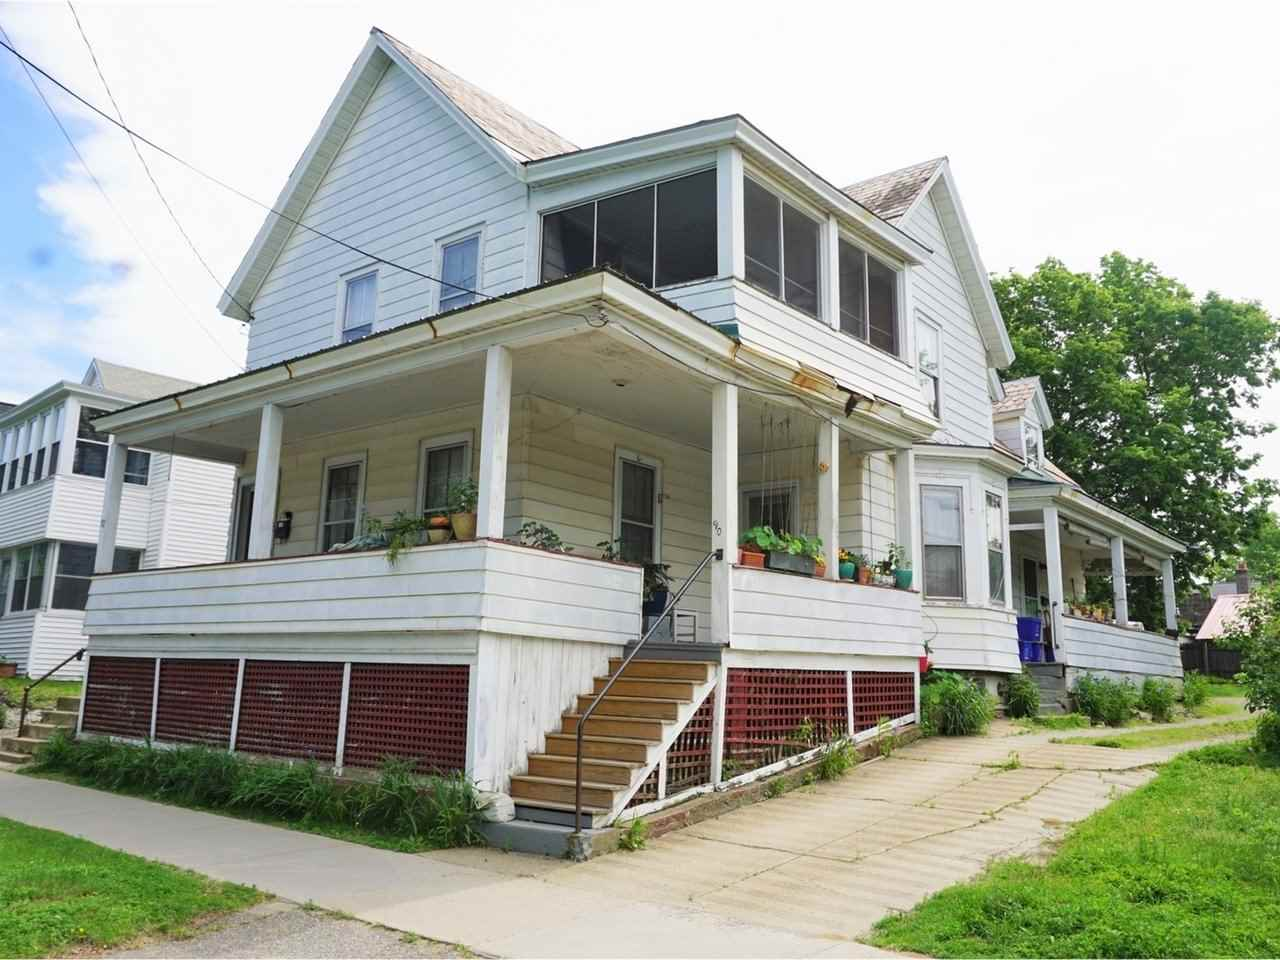 Strong upside on rents! The convenient Old North End is quickly establishing itself as Burlington's next premier neighborhood. Buyers have identified the O.N.E. as one of the best place to live and invest. Only a few blocks from Church Street, this 3-unit Multi Family is even closer to Taco Gordo, Butch and Babes, and the Barrio Bakery, some of Burlington's newest, hottest cafes and restaurants. A great location combined with spacious units, separate utilities and off-street parking attract tenants, owners and investors alike.